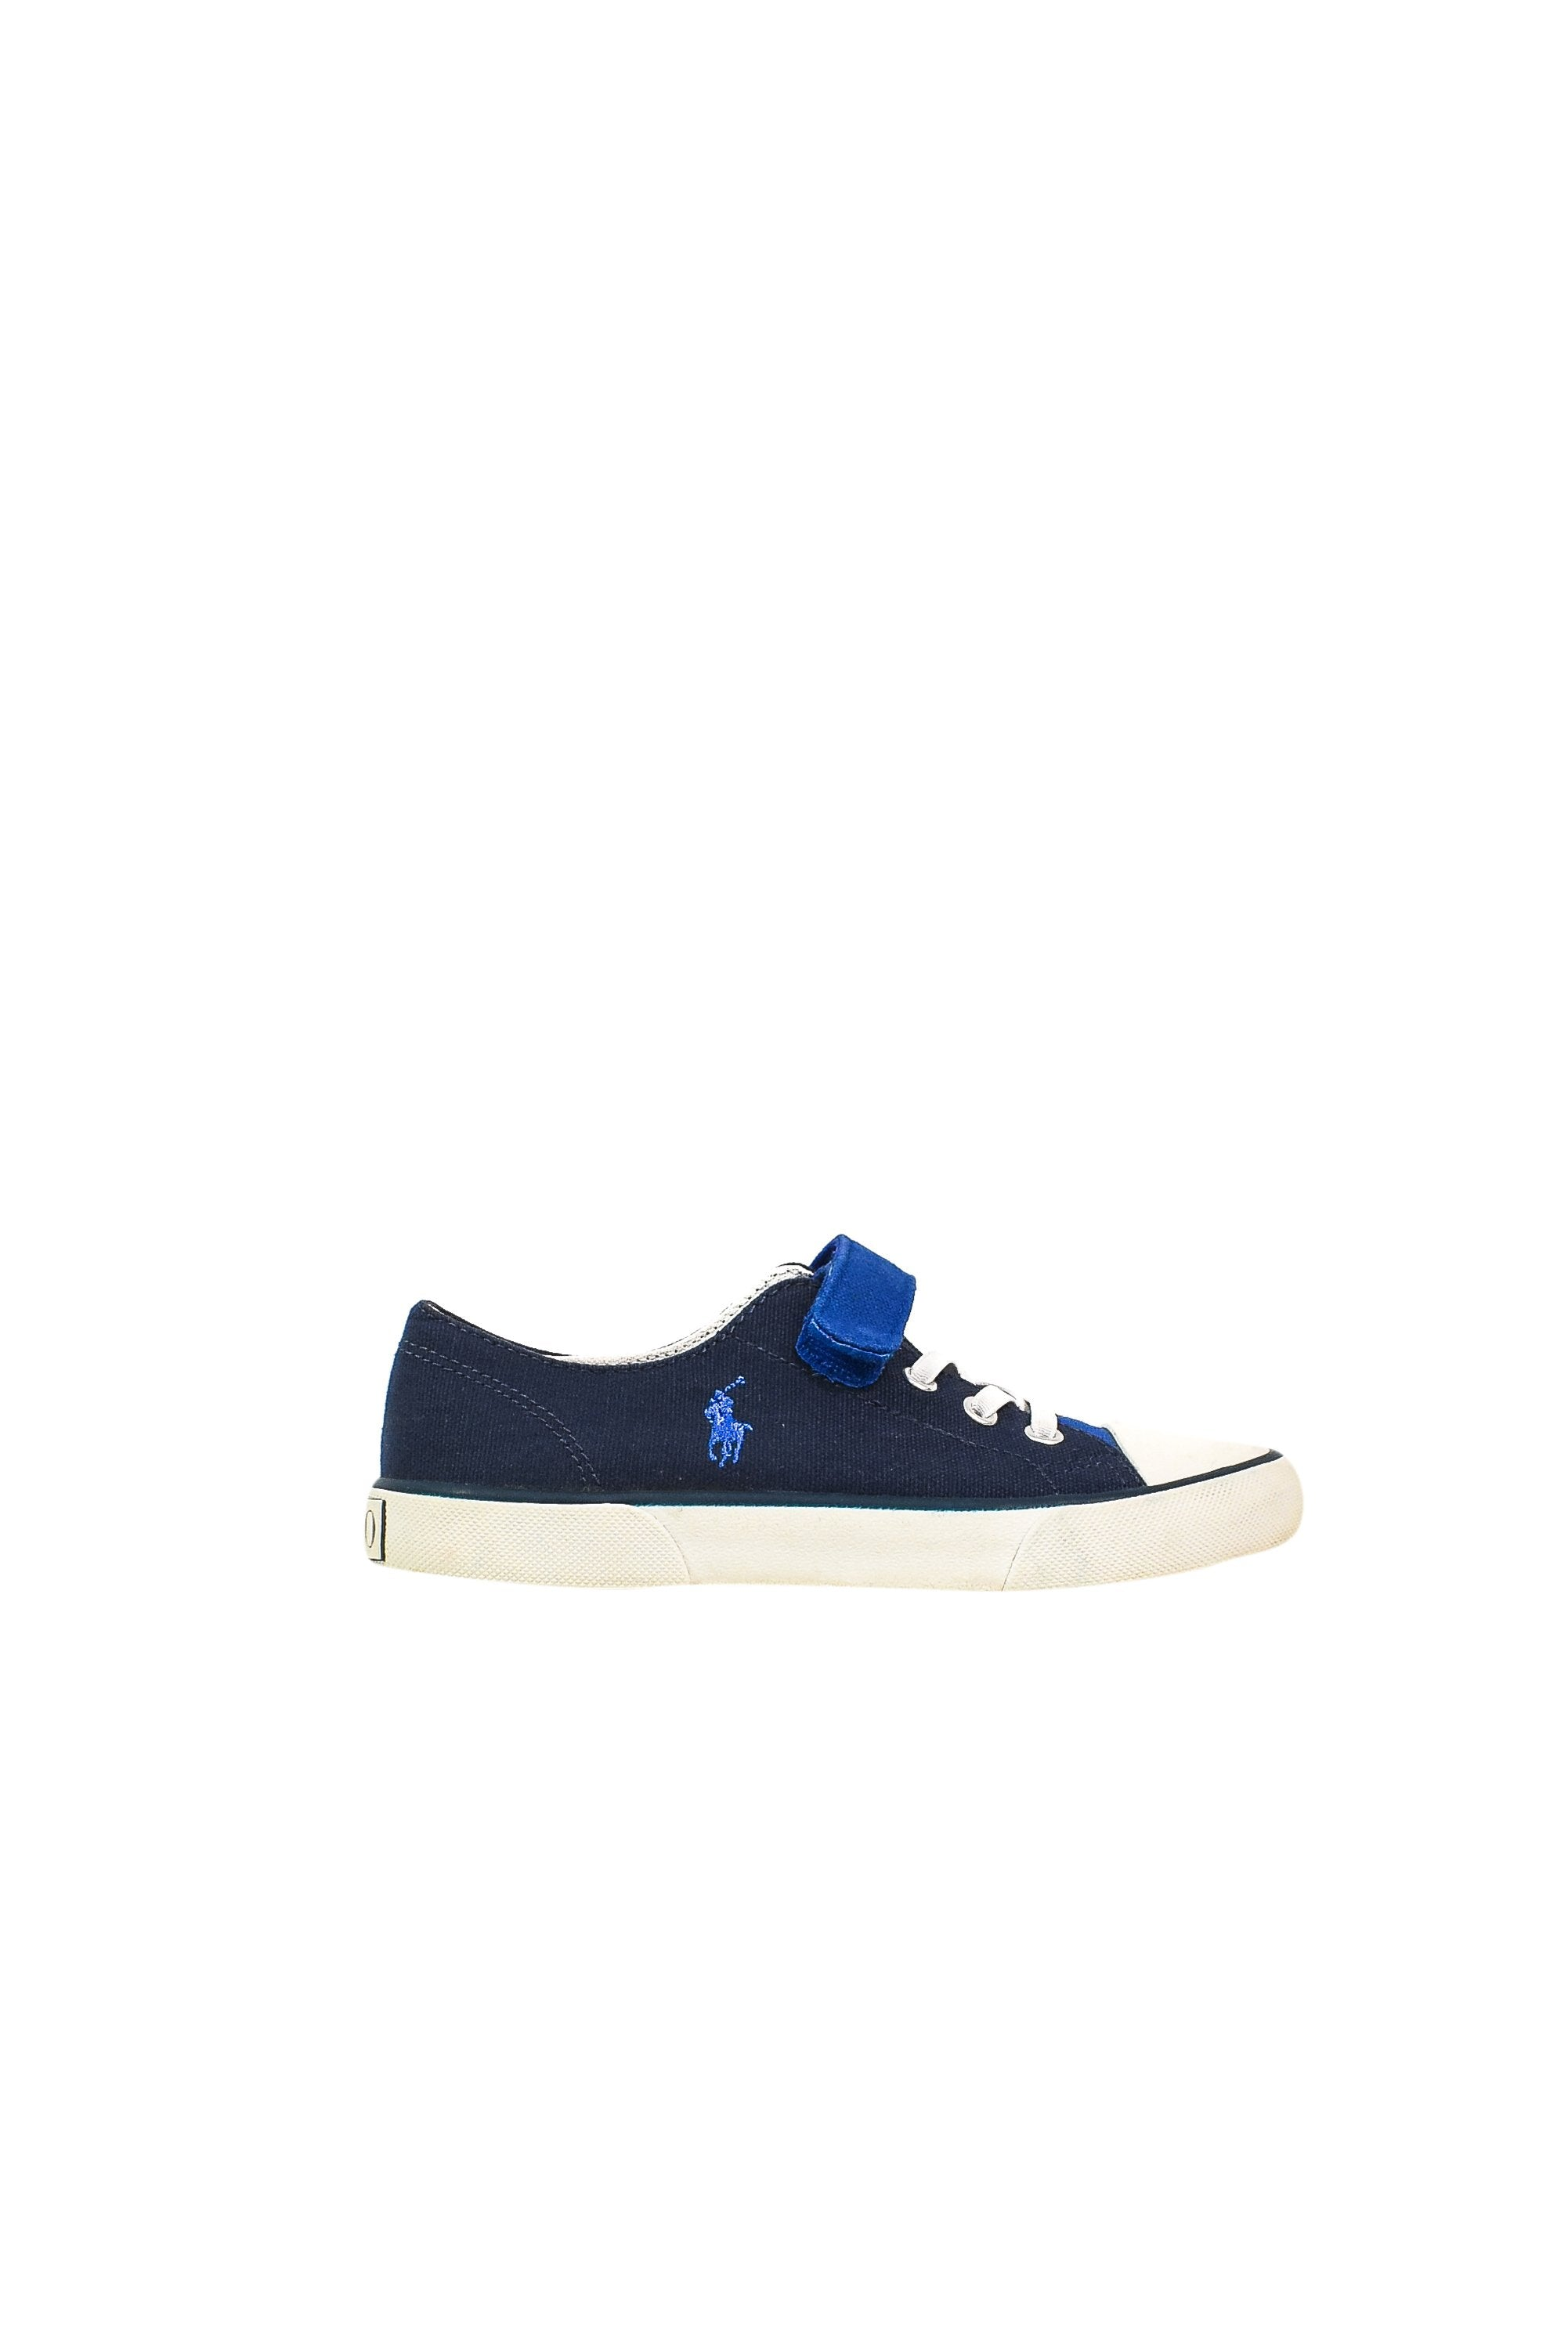 10043100 Polo Ralph Lauren Kids~Sneakers 6T (EU 30) at Retykle